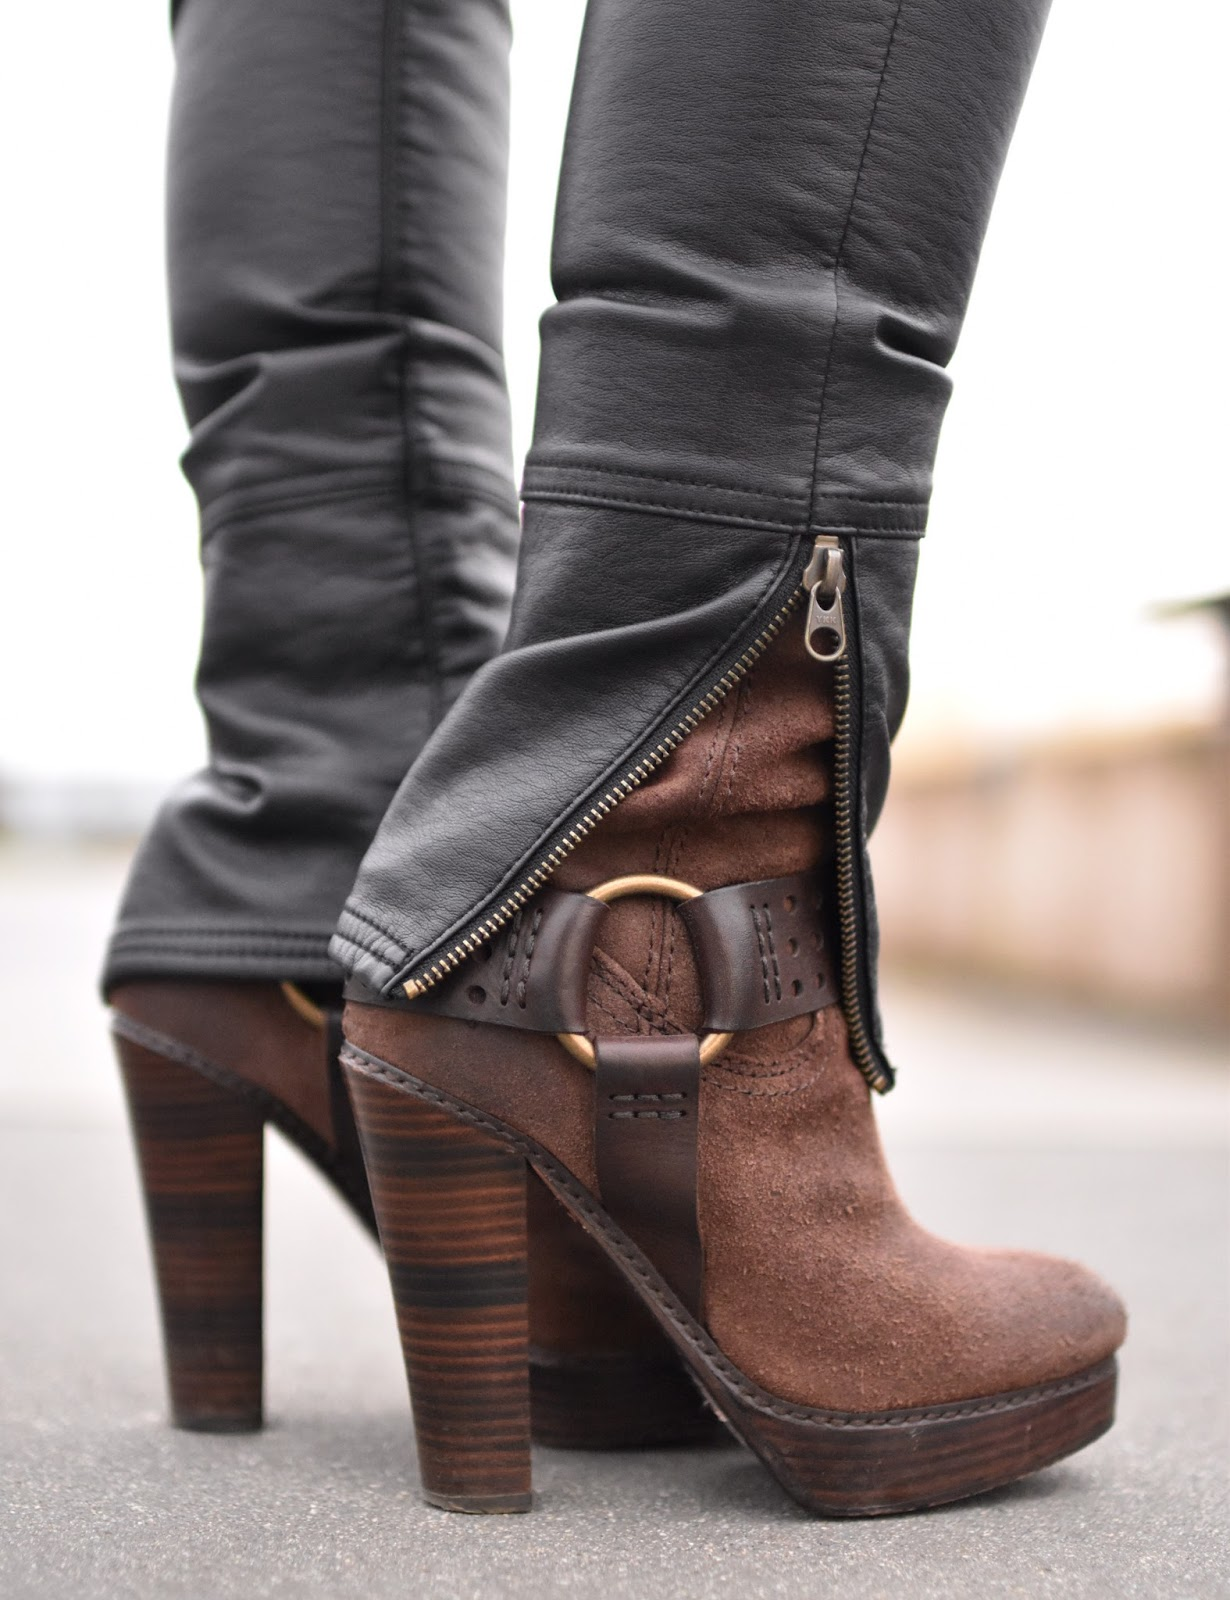 Monika Faulkner outfit inspiration - vegan leather jeans, Frye platform harness boots